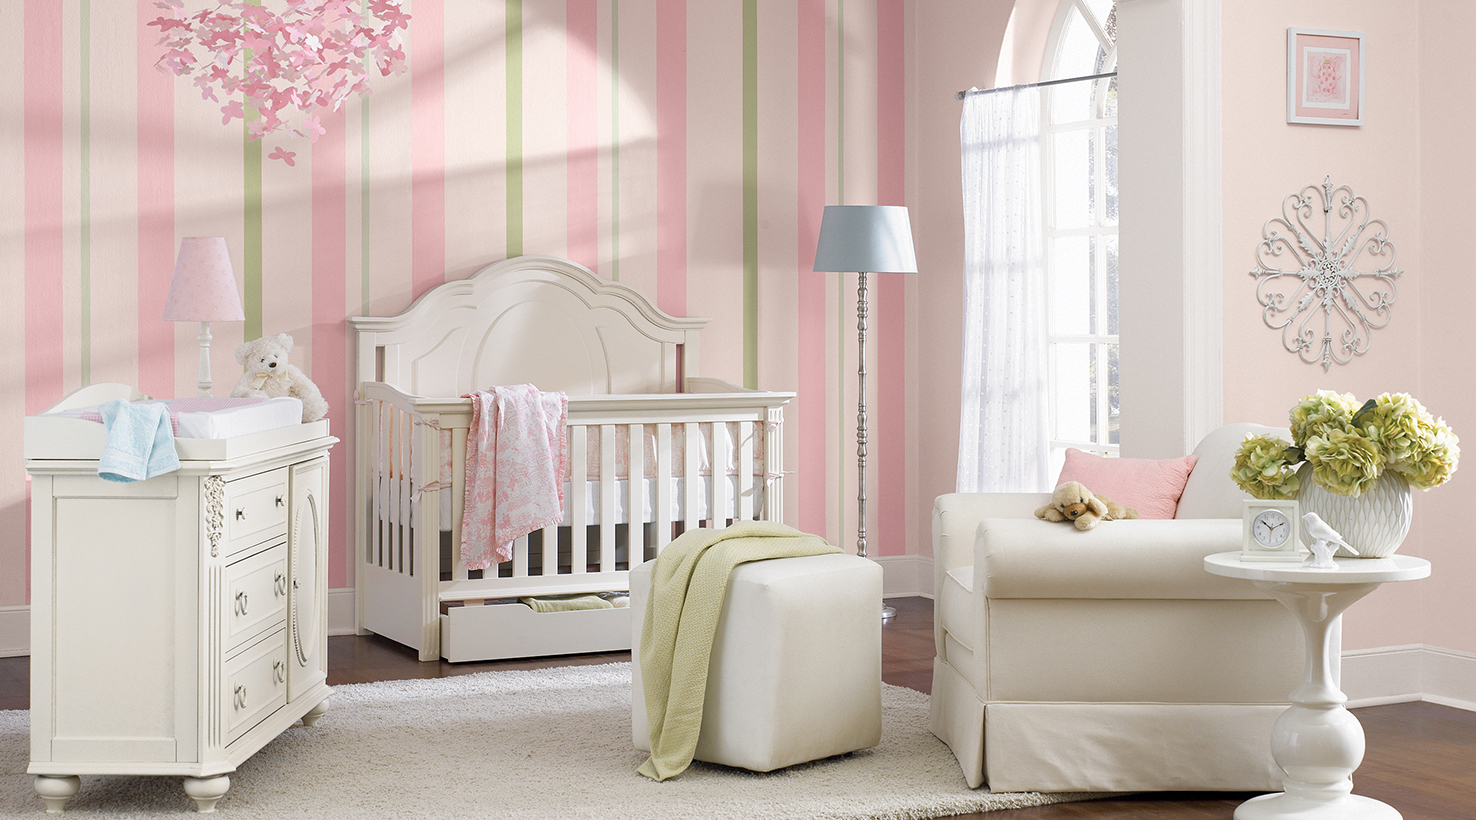 Baby & Toddler Room Color Inspiration by Sherwin-Williams